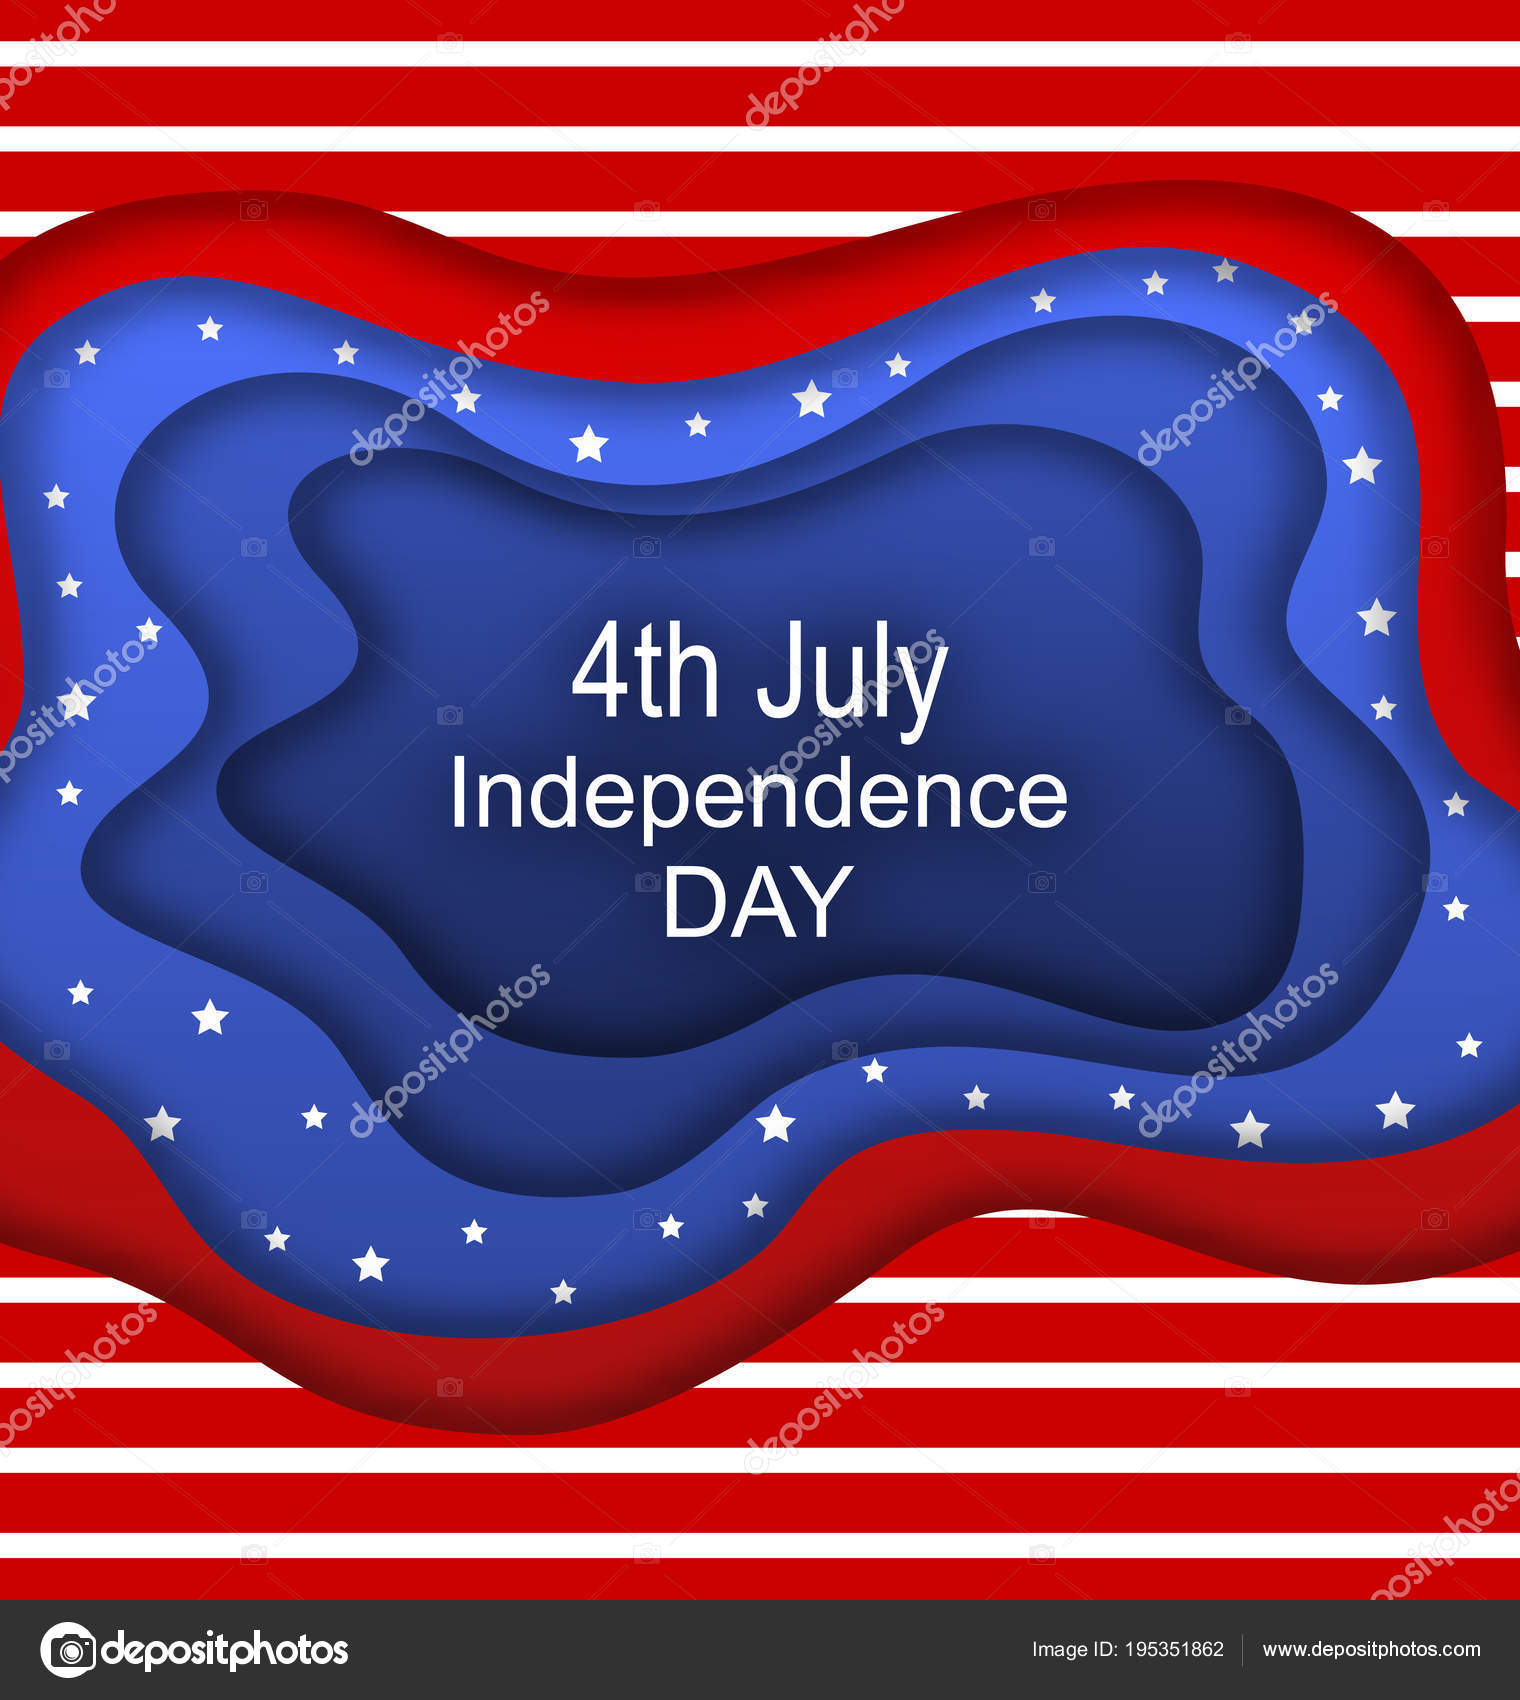 invitation for fourth of july independence day of the usa cut paper